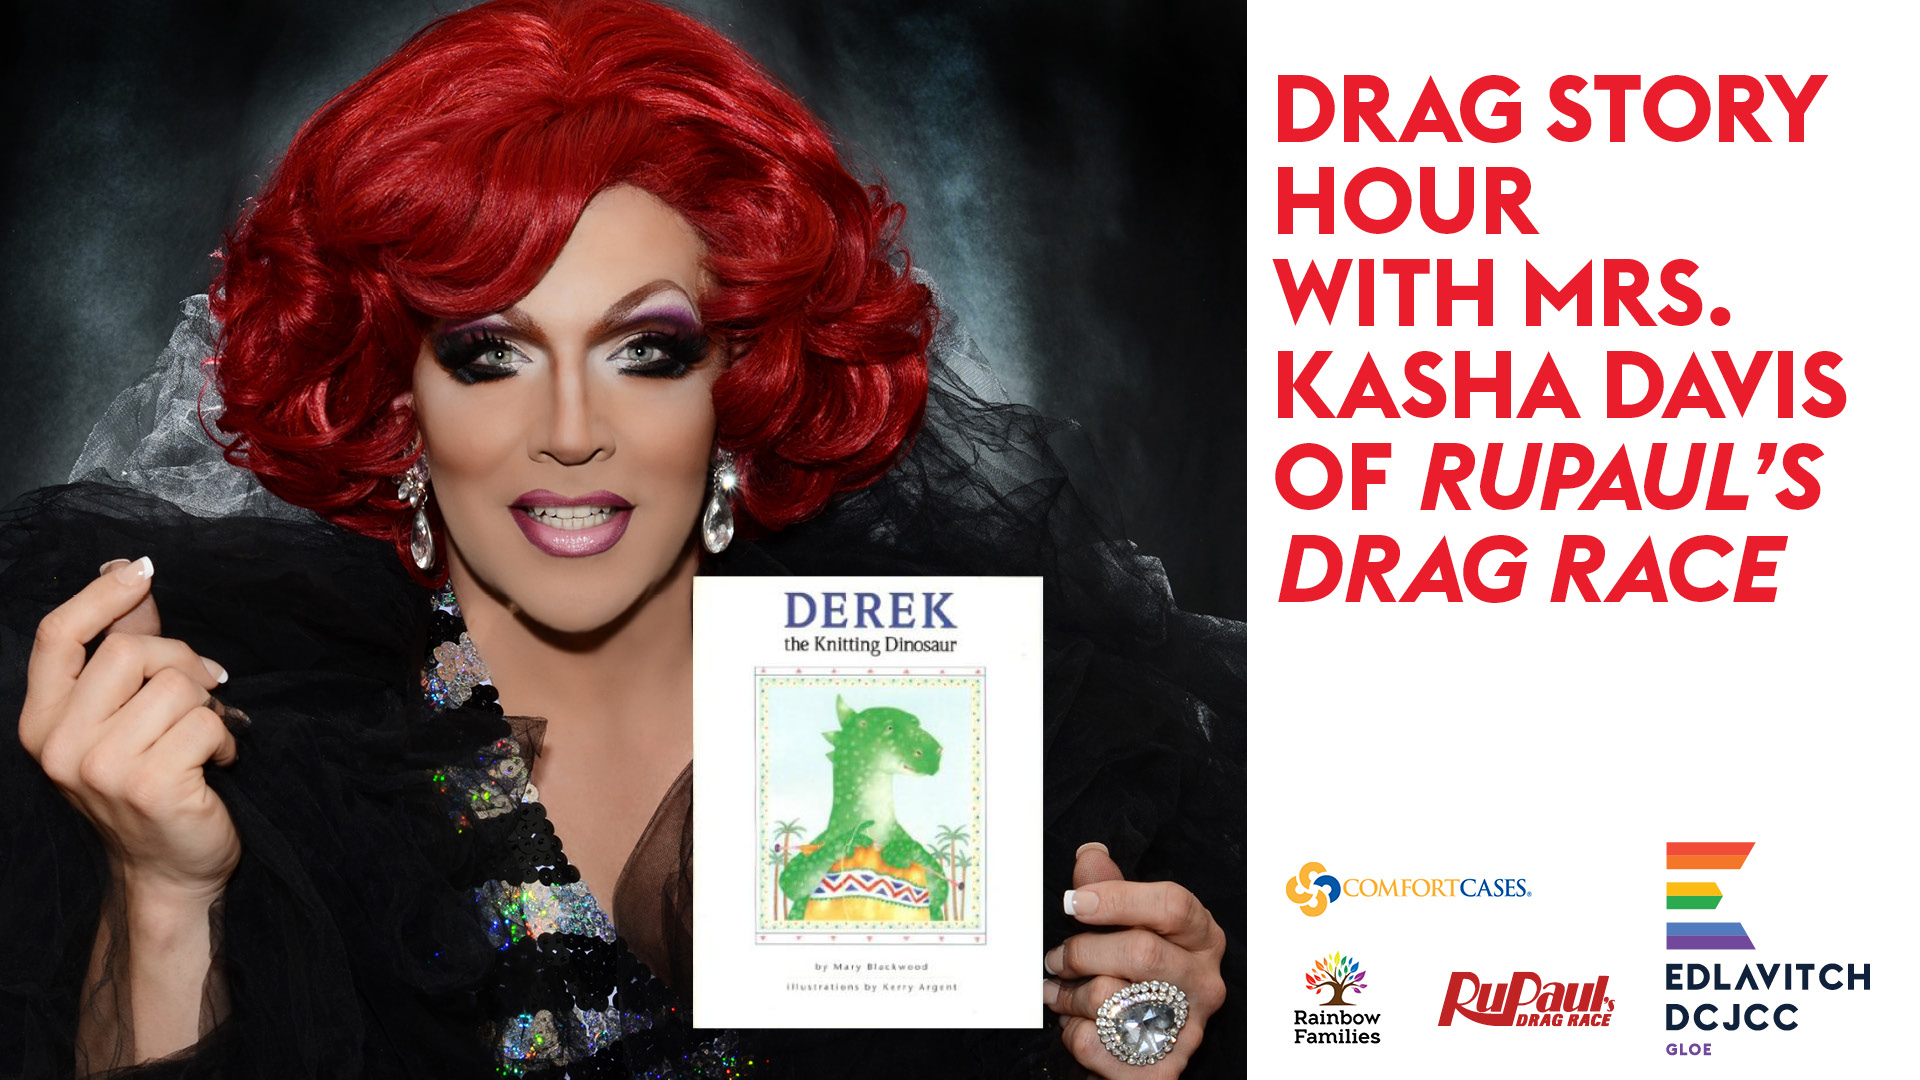 Drag Story Hour with Mrs. Kasha Davis of RuPaul's Drag Race